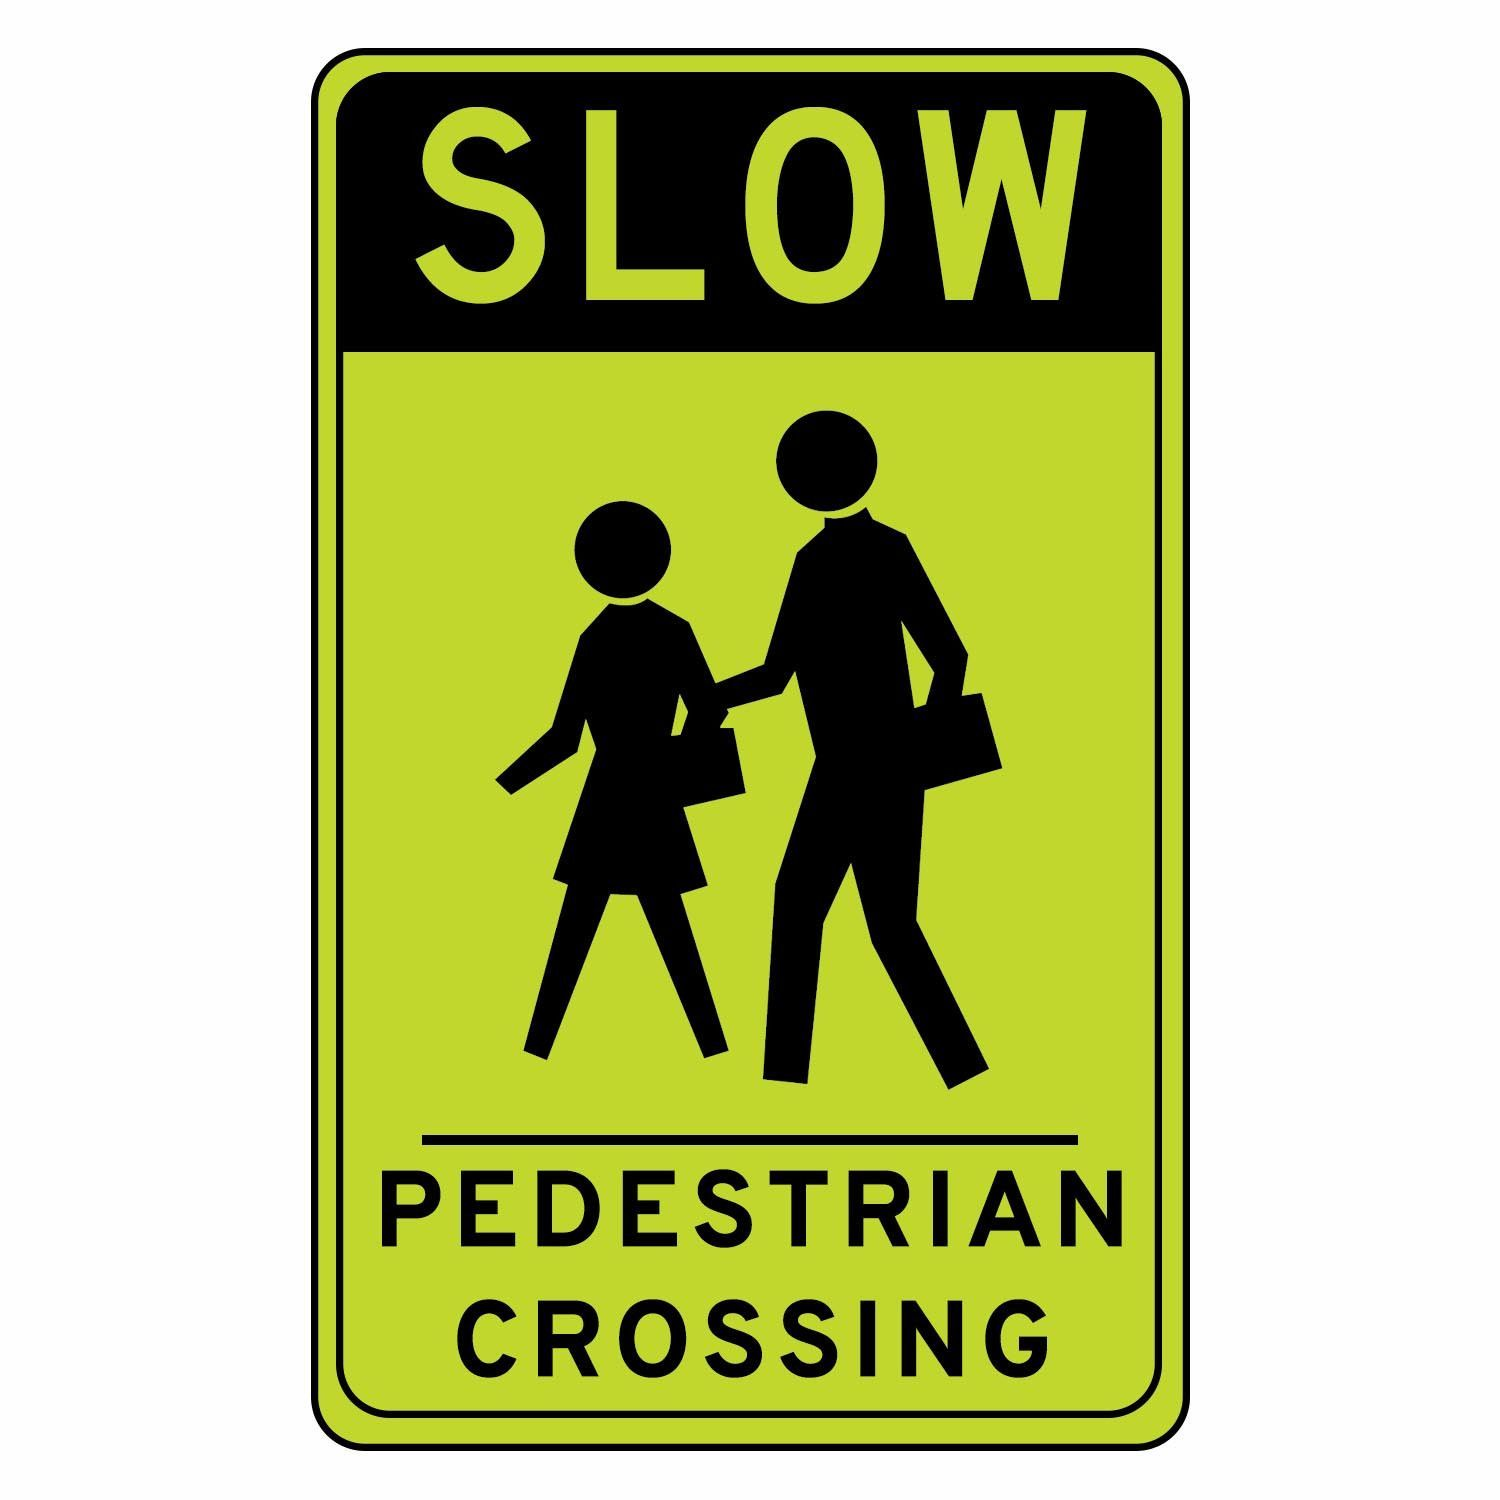 Slow Pedestrian Crossing | Pinterest | Pedestrian crossing and Products